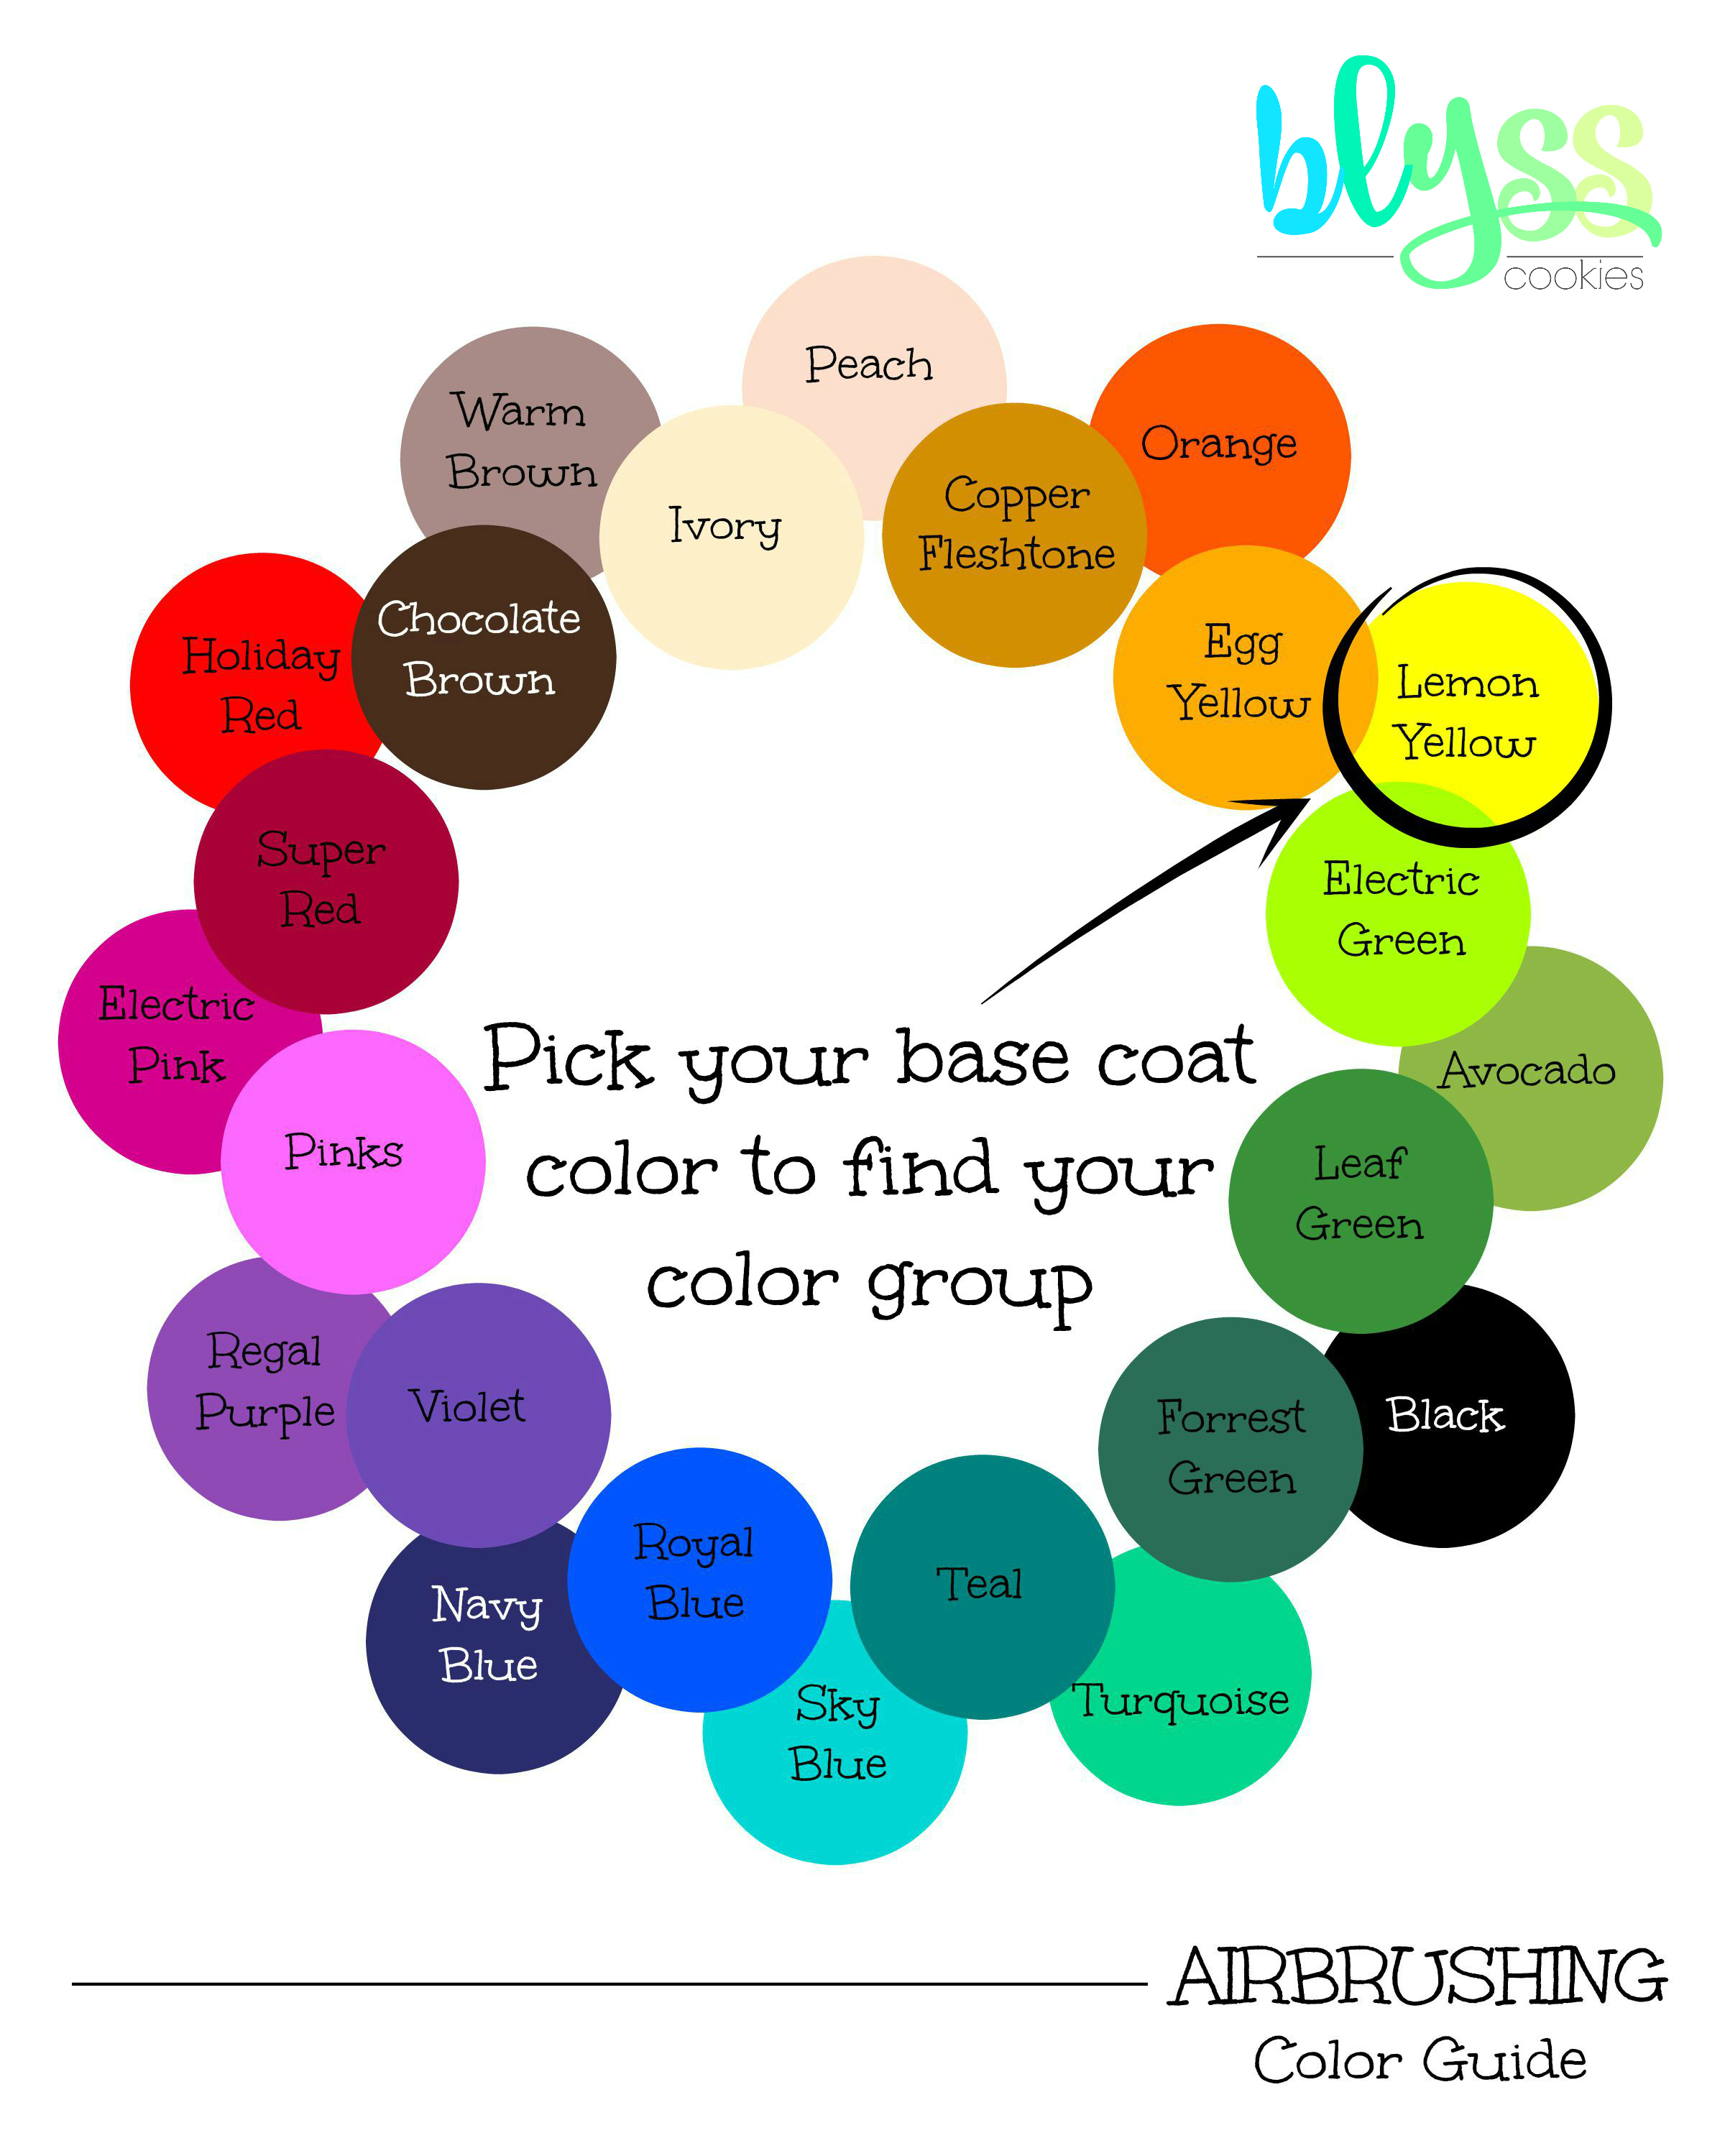 Airbrushing Color Guide2.jpg